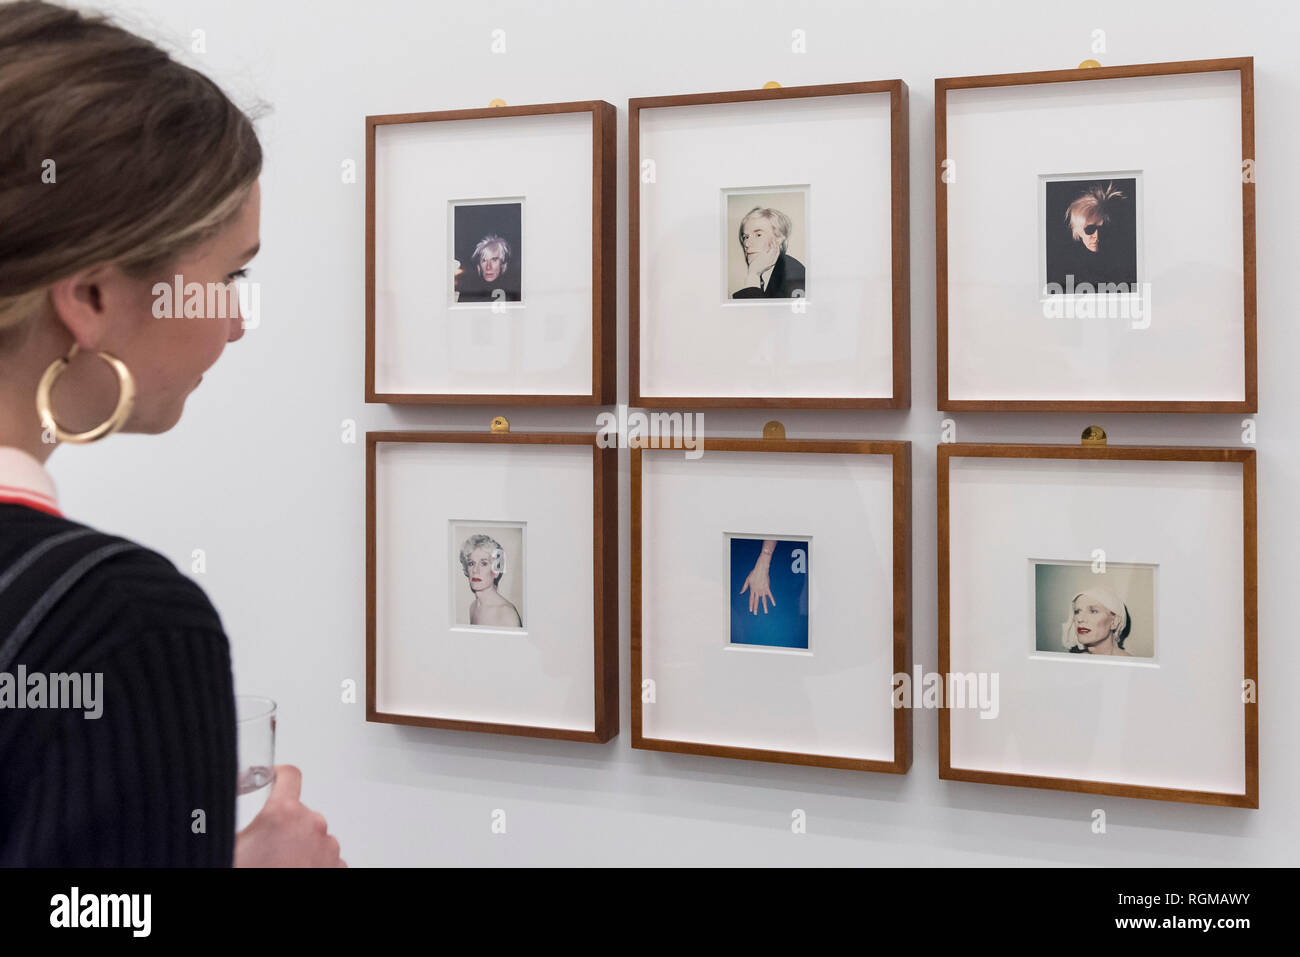 London, UK.  30 January 2019. A staff member views a series of self-portraits (1977 to 1986) by Andy Warhol. Preview of 'Andy Warhol Polaroid Pictures', an exhibition of over 60 portrait and self-portrait Polaroid photographs by Andy Warhol.  The works, which depict artists, actors, politicians and friends of his Factory entourage in New York during the 1970s and 80s, are on display 2 February to 13 April 2019 at Bastian Gallery in Mayfair.  Credit: Stephen Chung / Alamy Live News - Stock Image